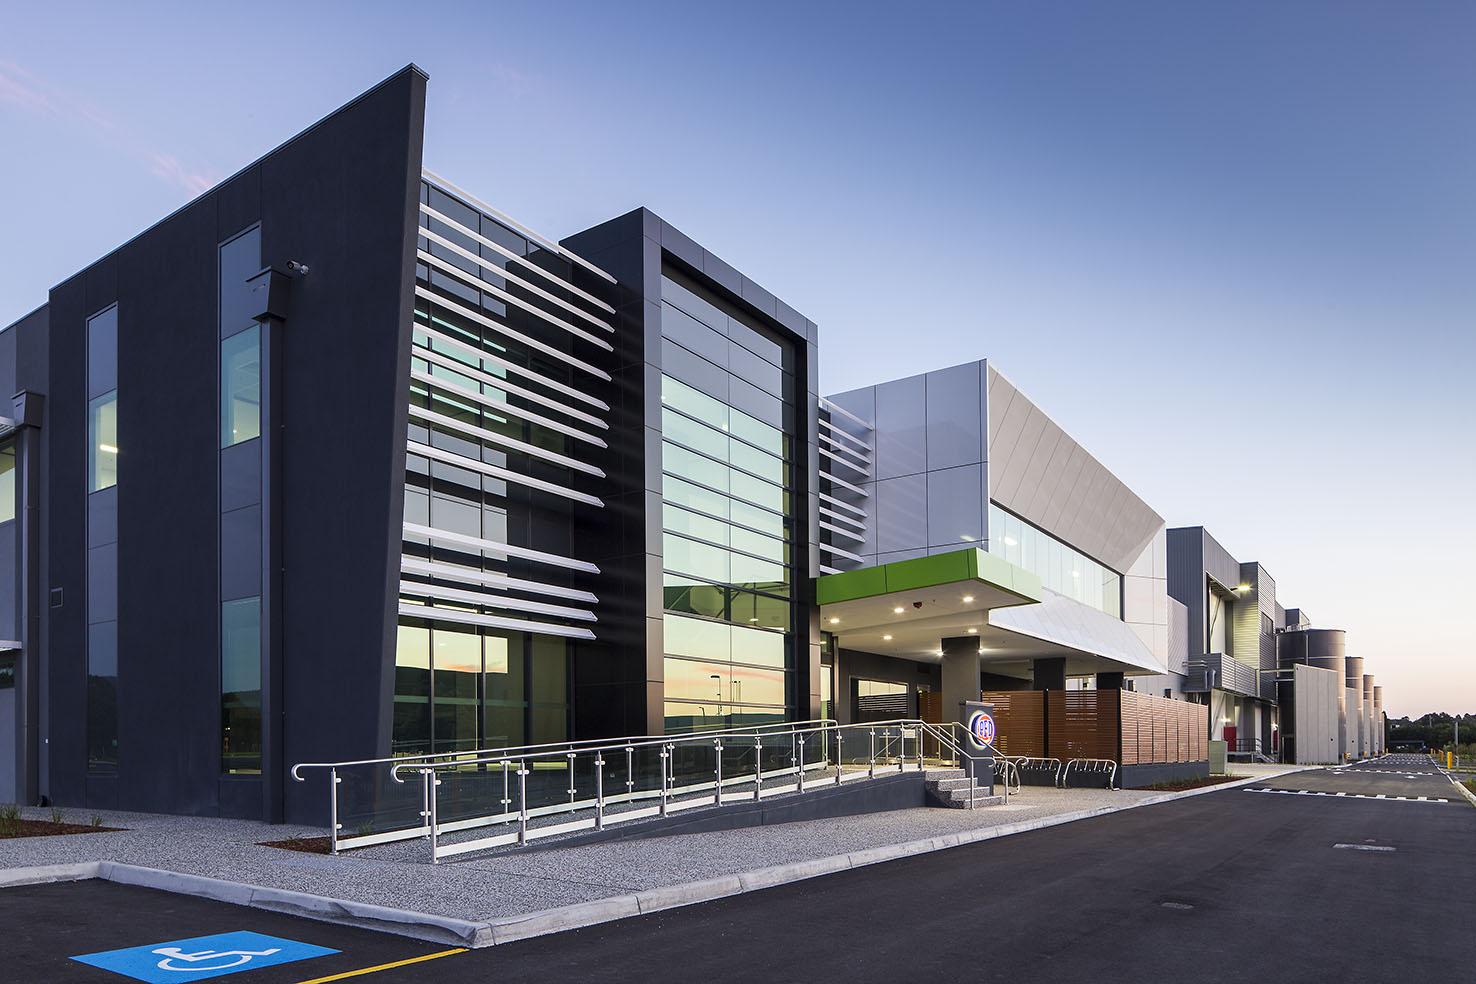 PFD  Knoxfield, VIC 25,000m2  Architect: Vaughan Constructions